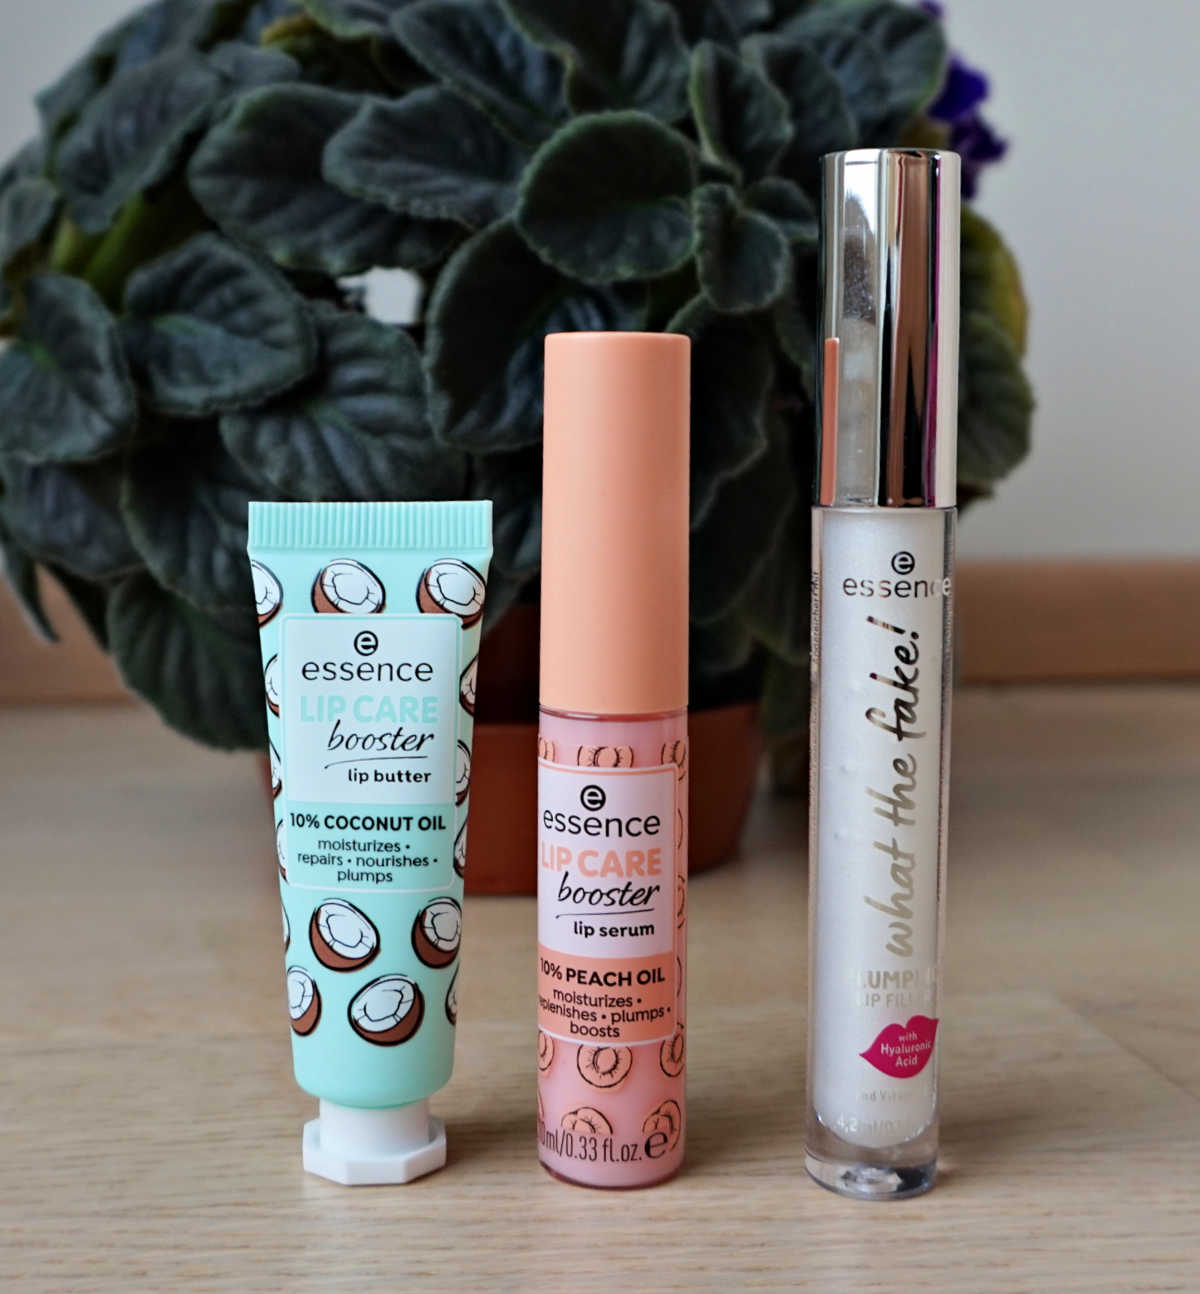 Essence Lip Care Booster Lip Butter and Lip Serum. Essence What The Fake Plumping Lip Filler